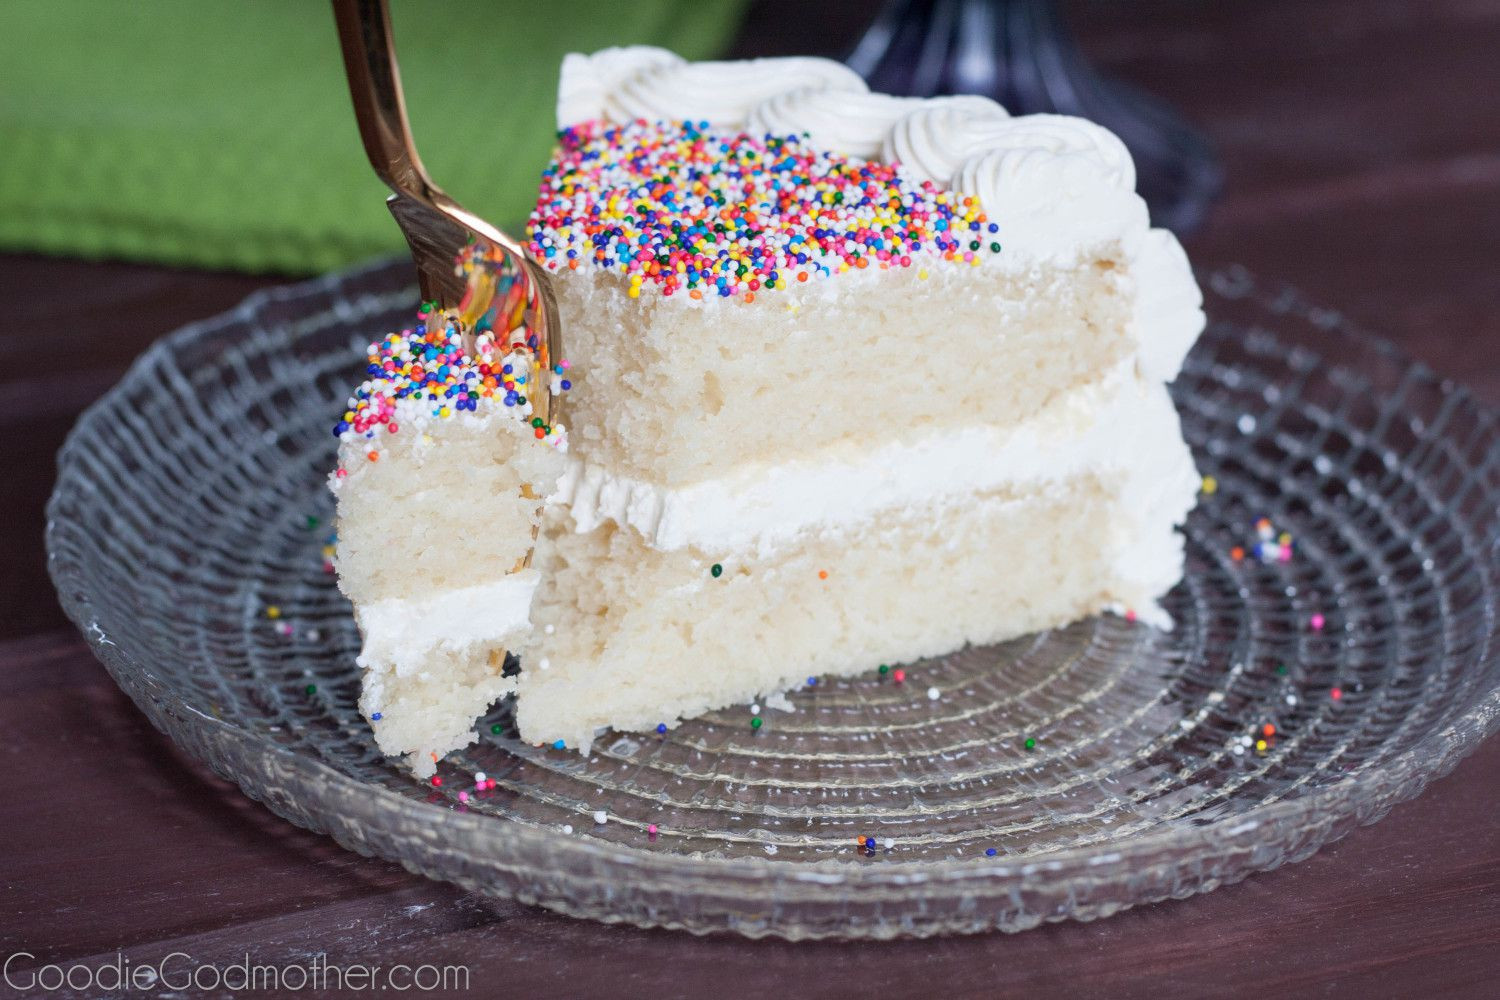 Wedding Cakes Ingredients  White Cake Recipe FROM SCRATCH Goo Godmother A